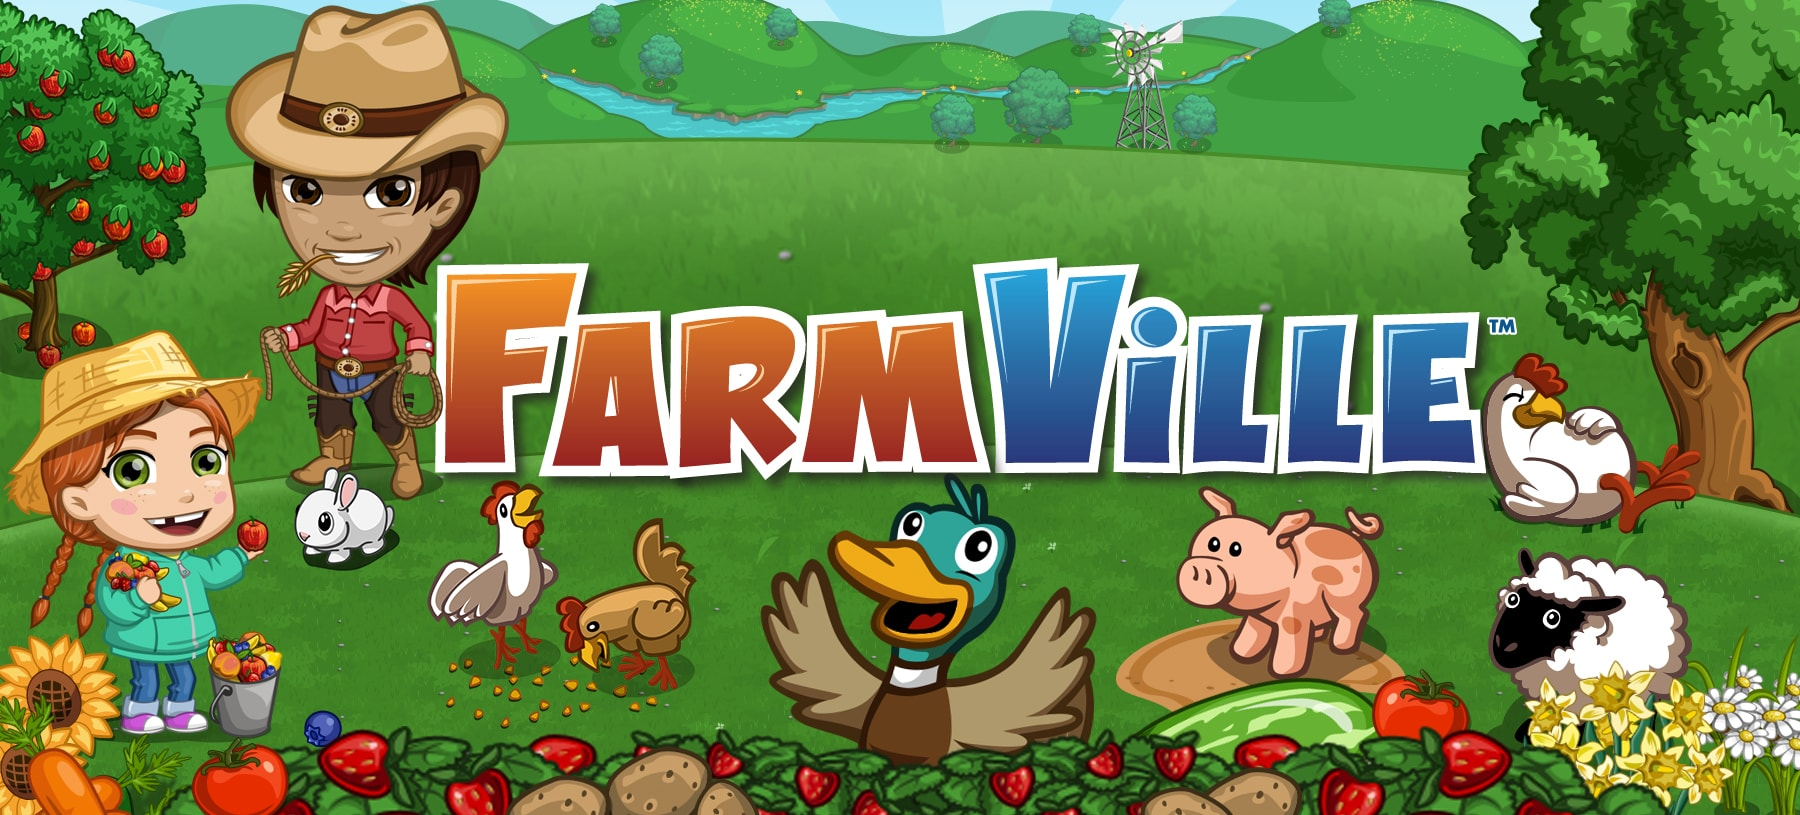 Adobe Flash Officially Dies, Taking FarmVille on Facebook to the Grave